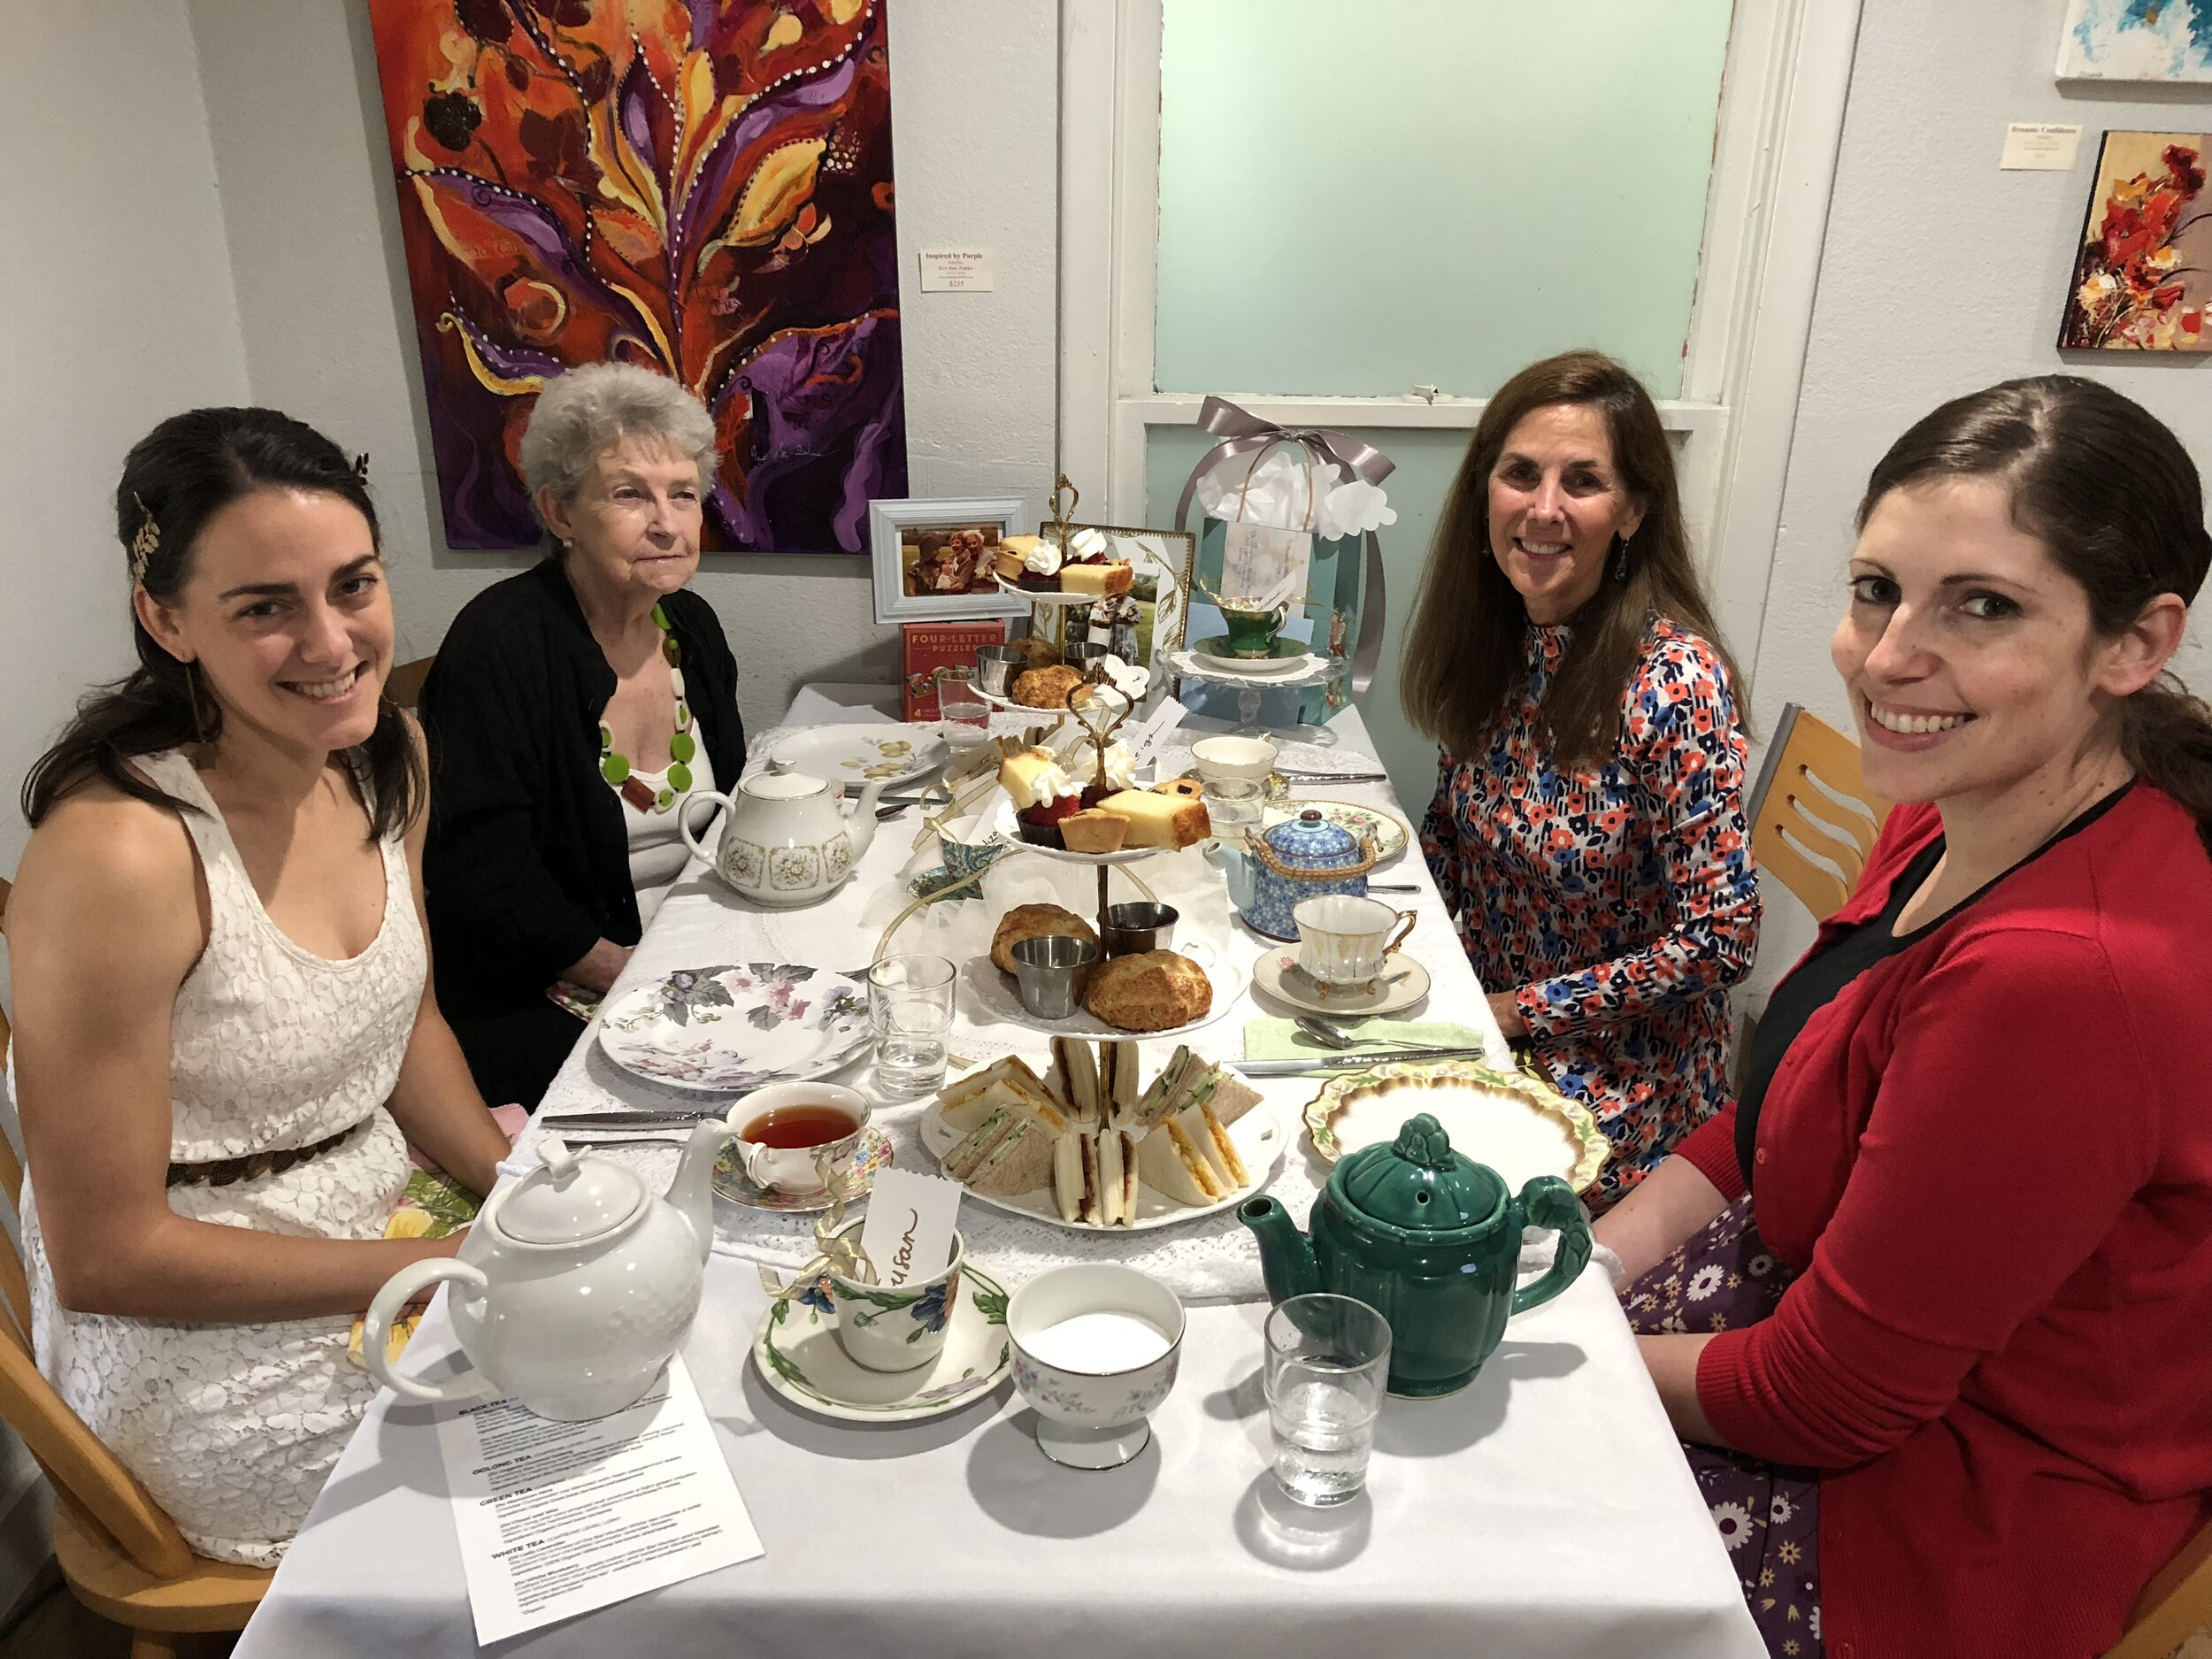 Afternoon Tea at Brentwood Social House